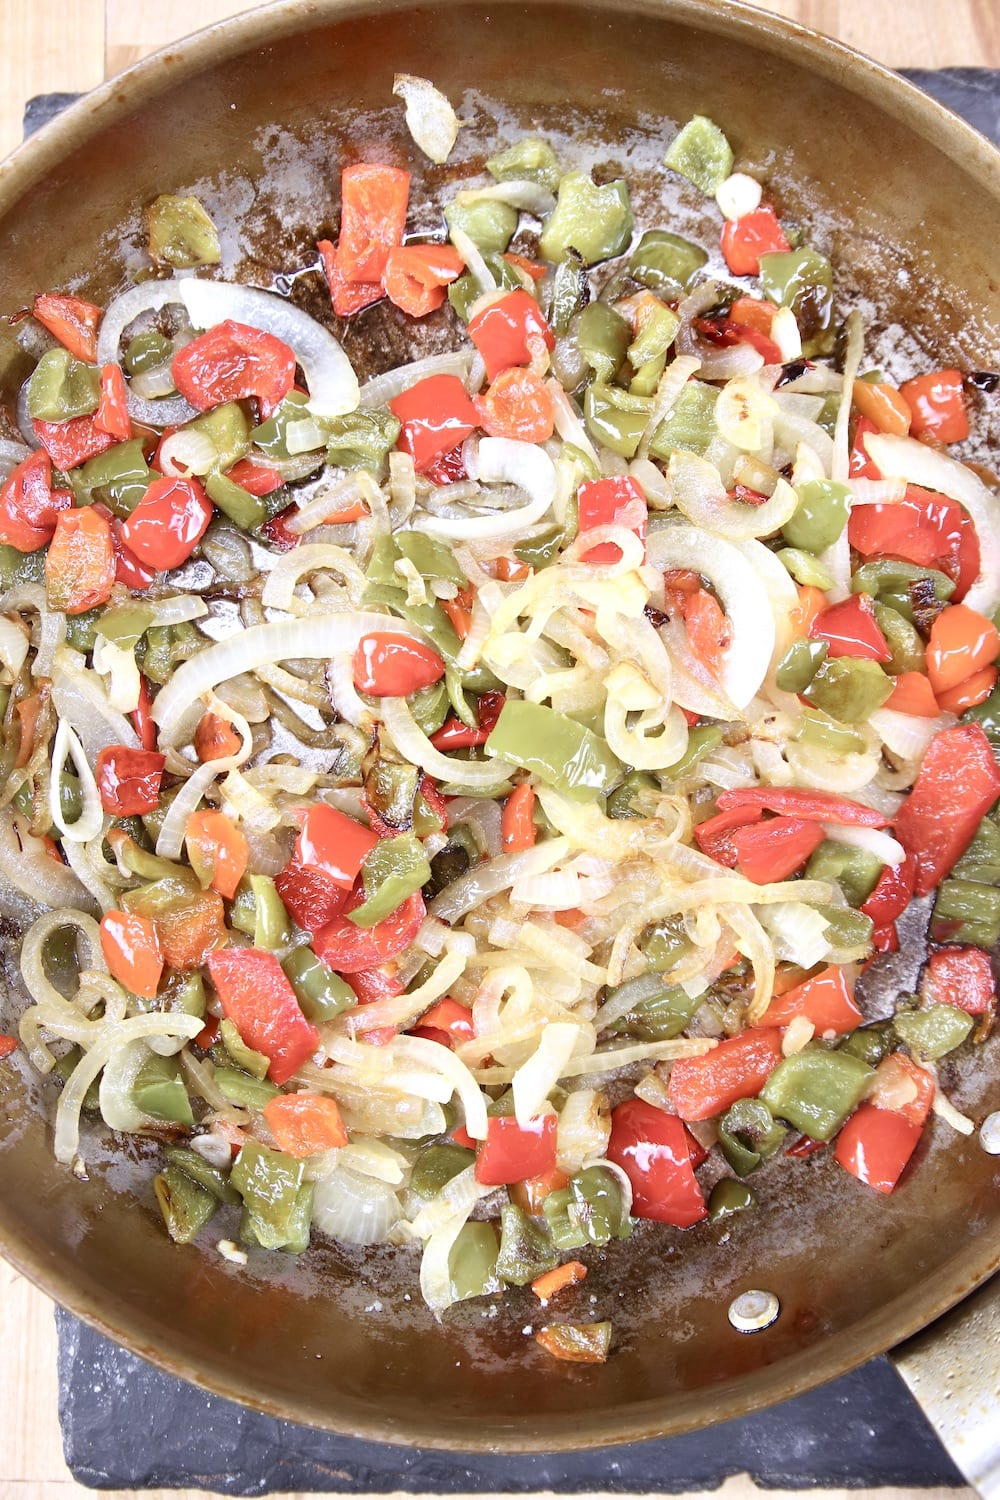 skillet of cooked onions and bell peppers